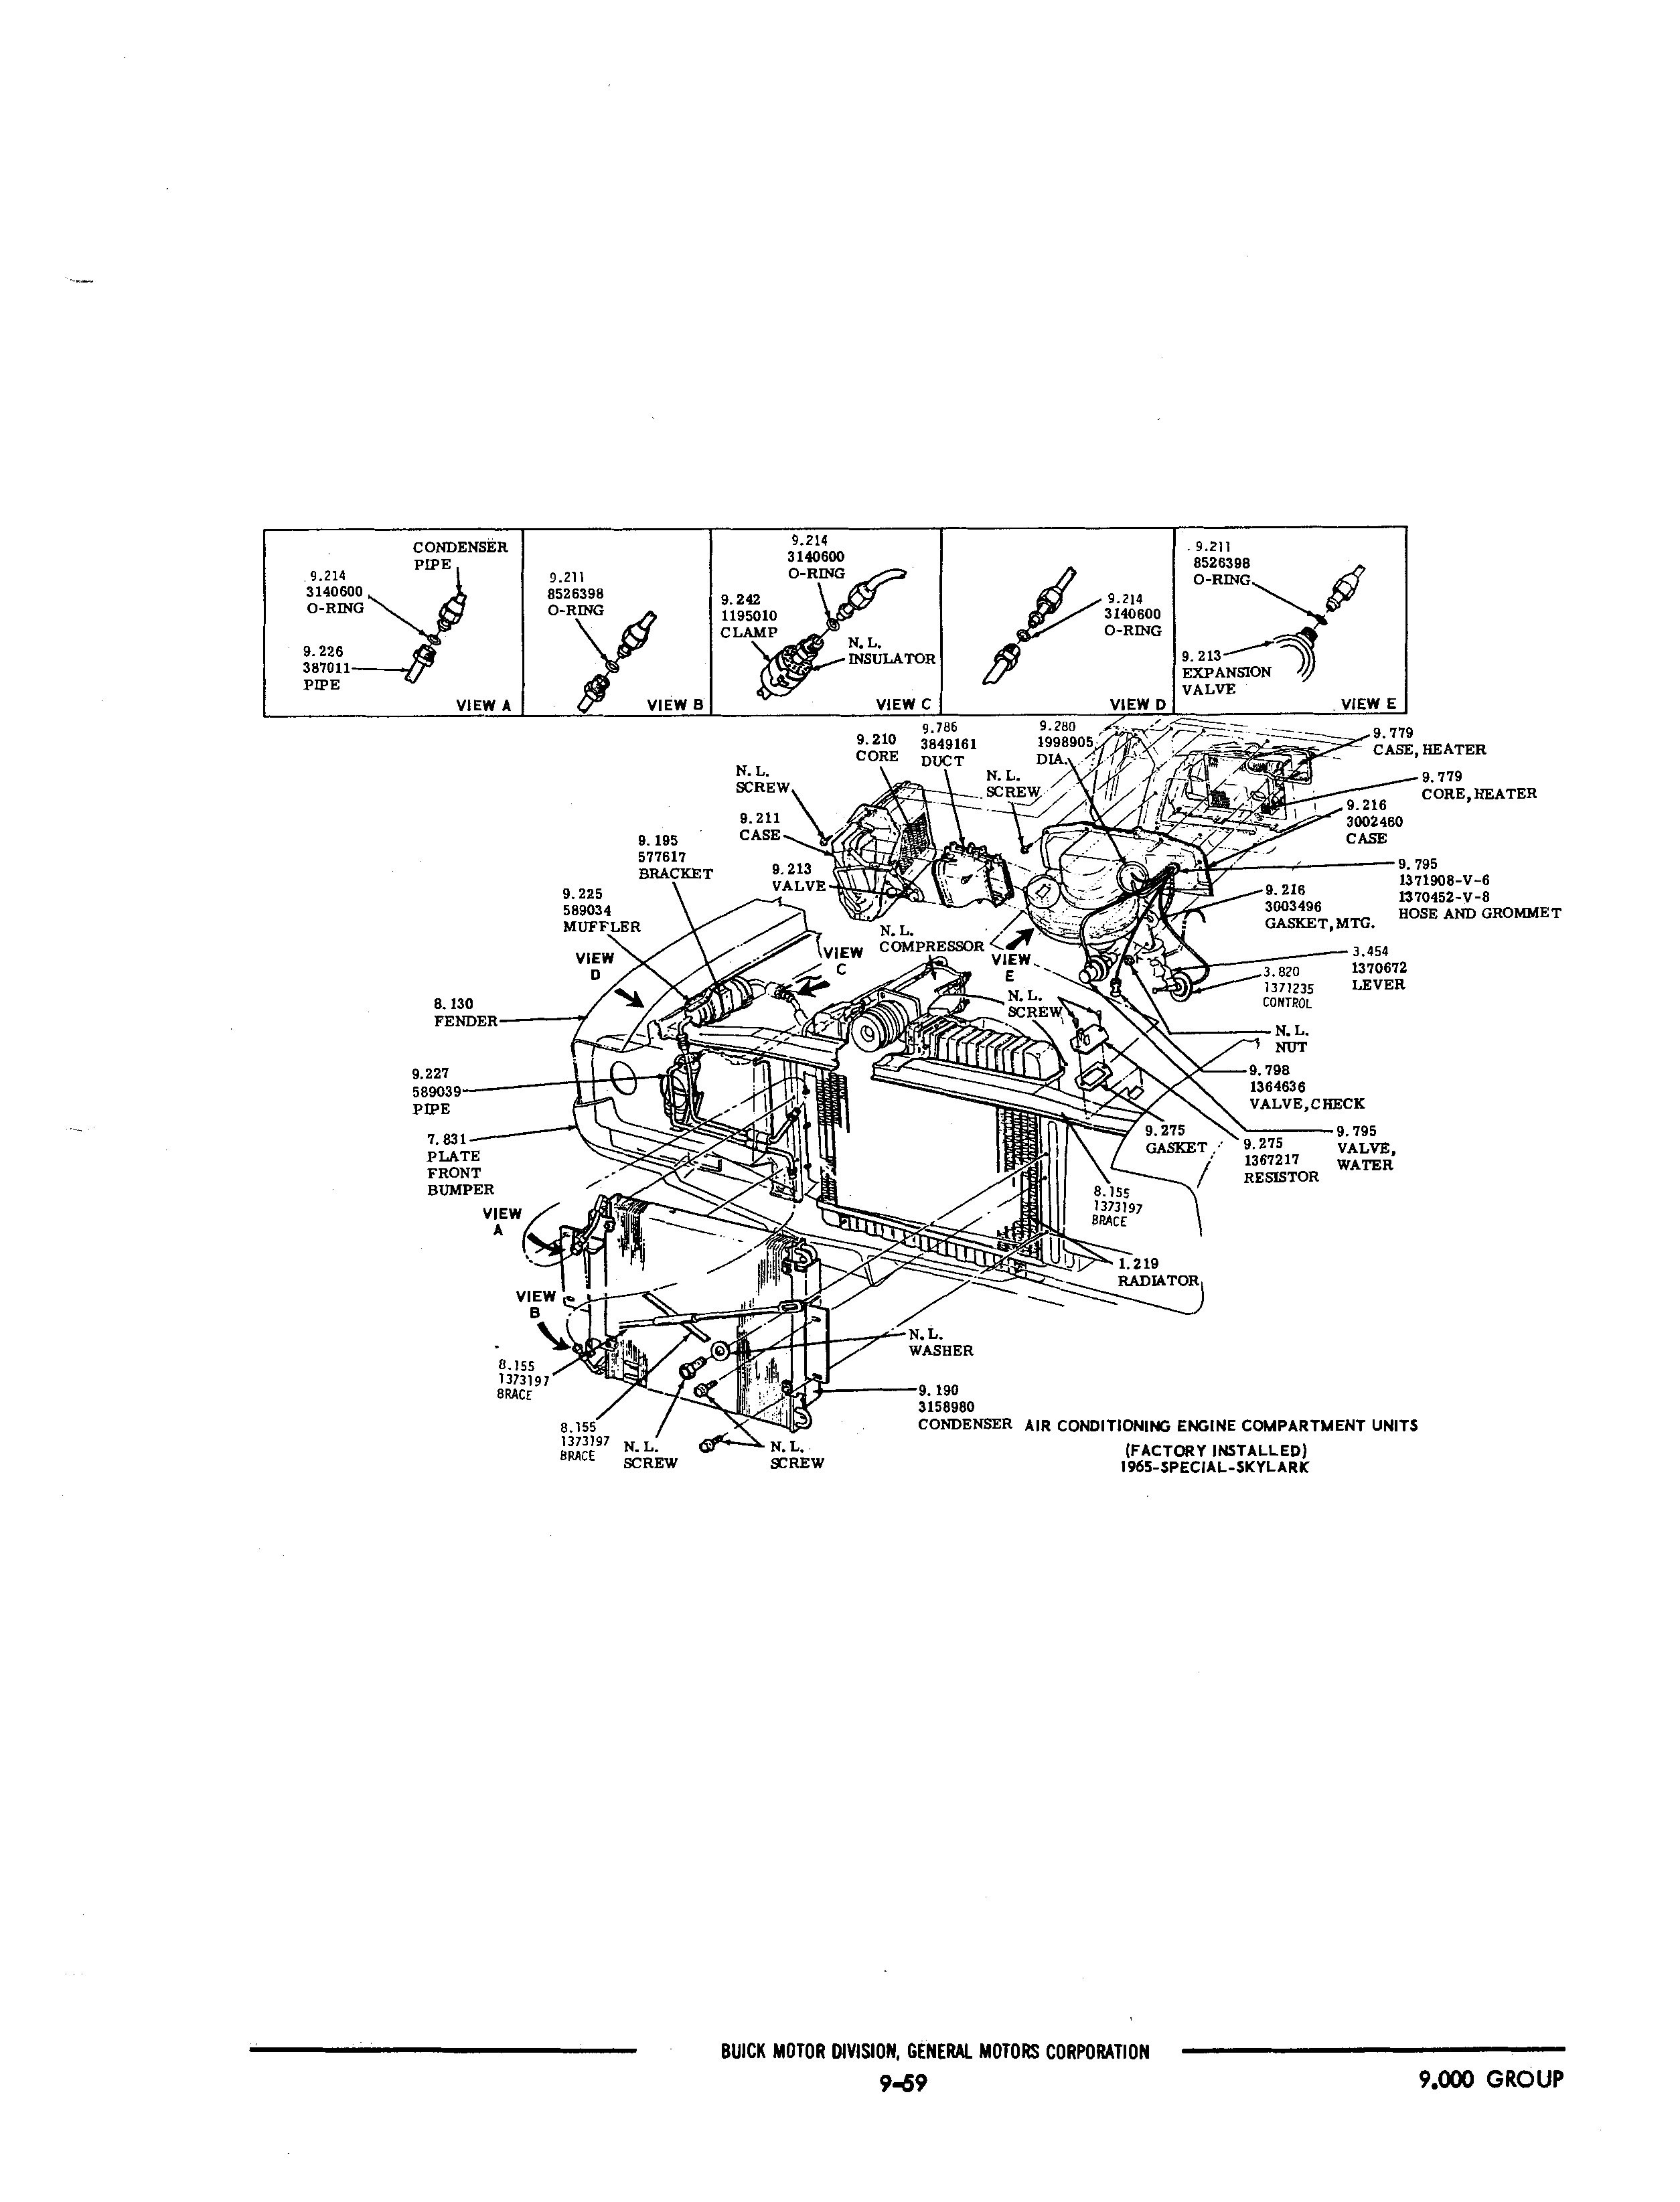 Product further ShowAssembly likewise Opel Manta Wiring Diagram in addition 2006 Jeep Grand Cherokee Wiring Diagram further 61wvq Thanks Previous Help Trying Improve Explanation. on buick chassis